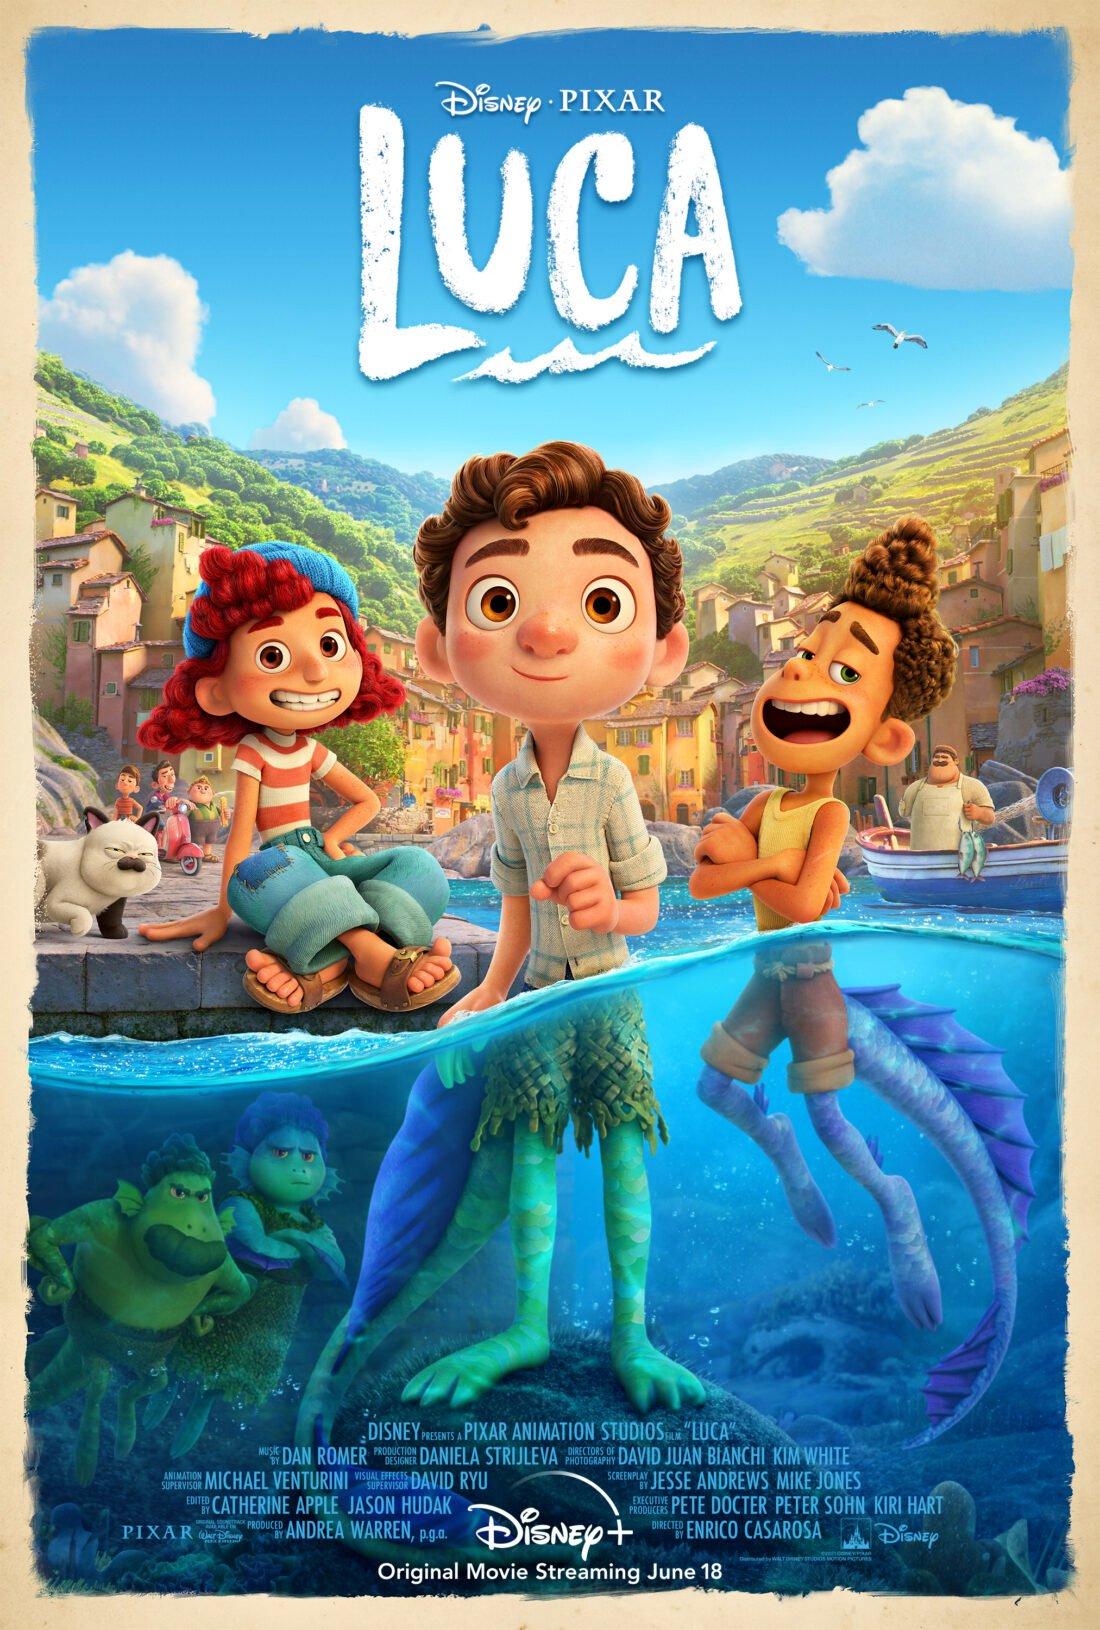 Enjoy an incredible summer in the Italian seaside town of Portorosso, in this coming of age film Disney and Pixar's Original Feature Film Luca. Streaming exclusively on Disney+, June 18th, 2021